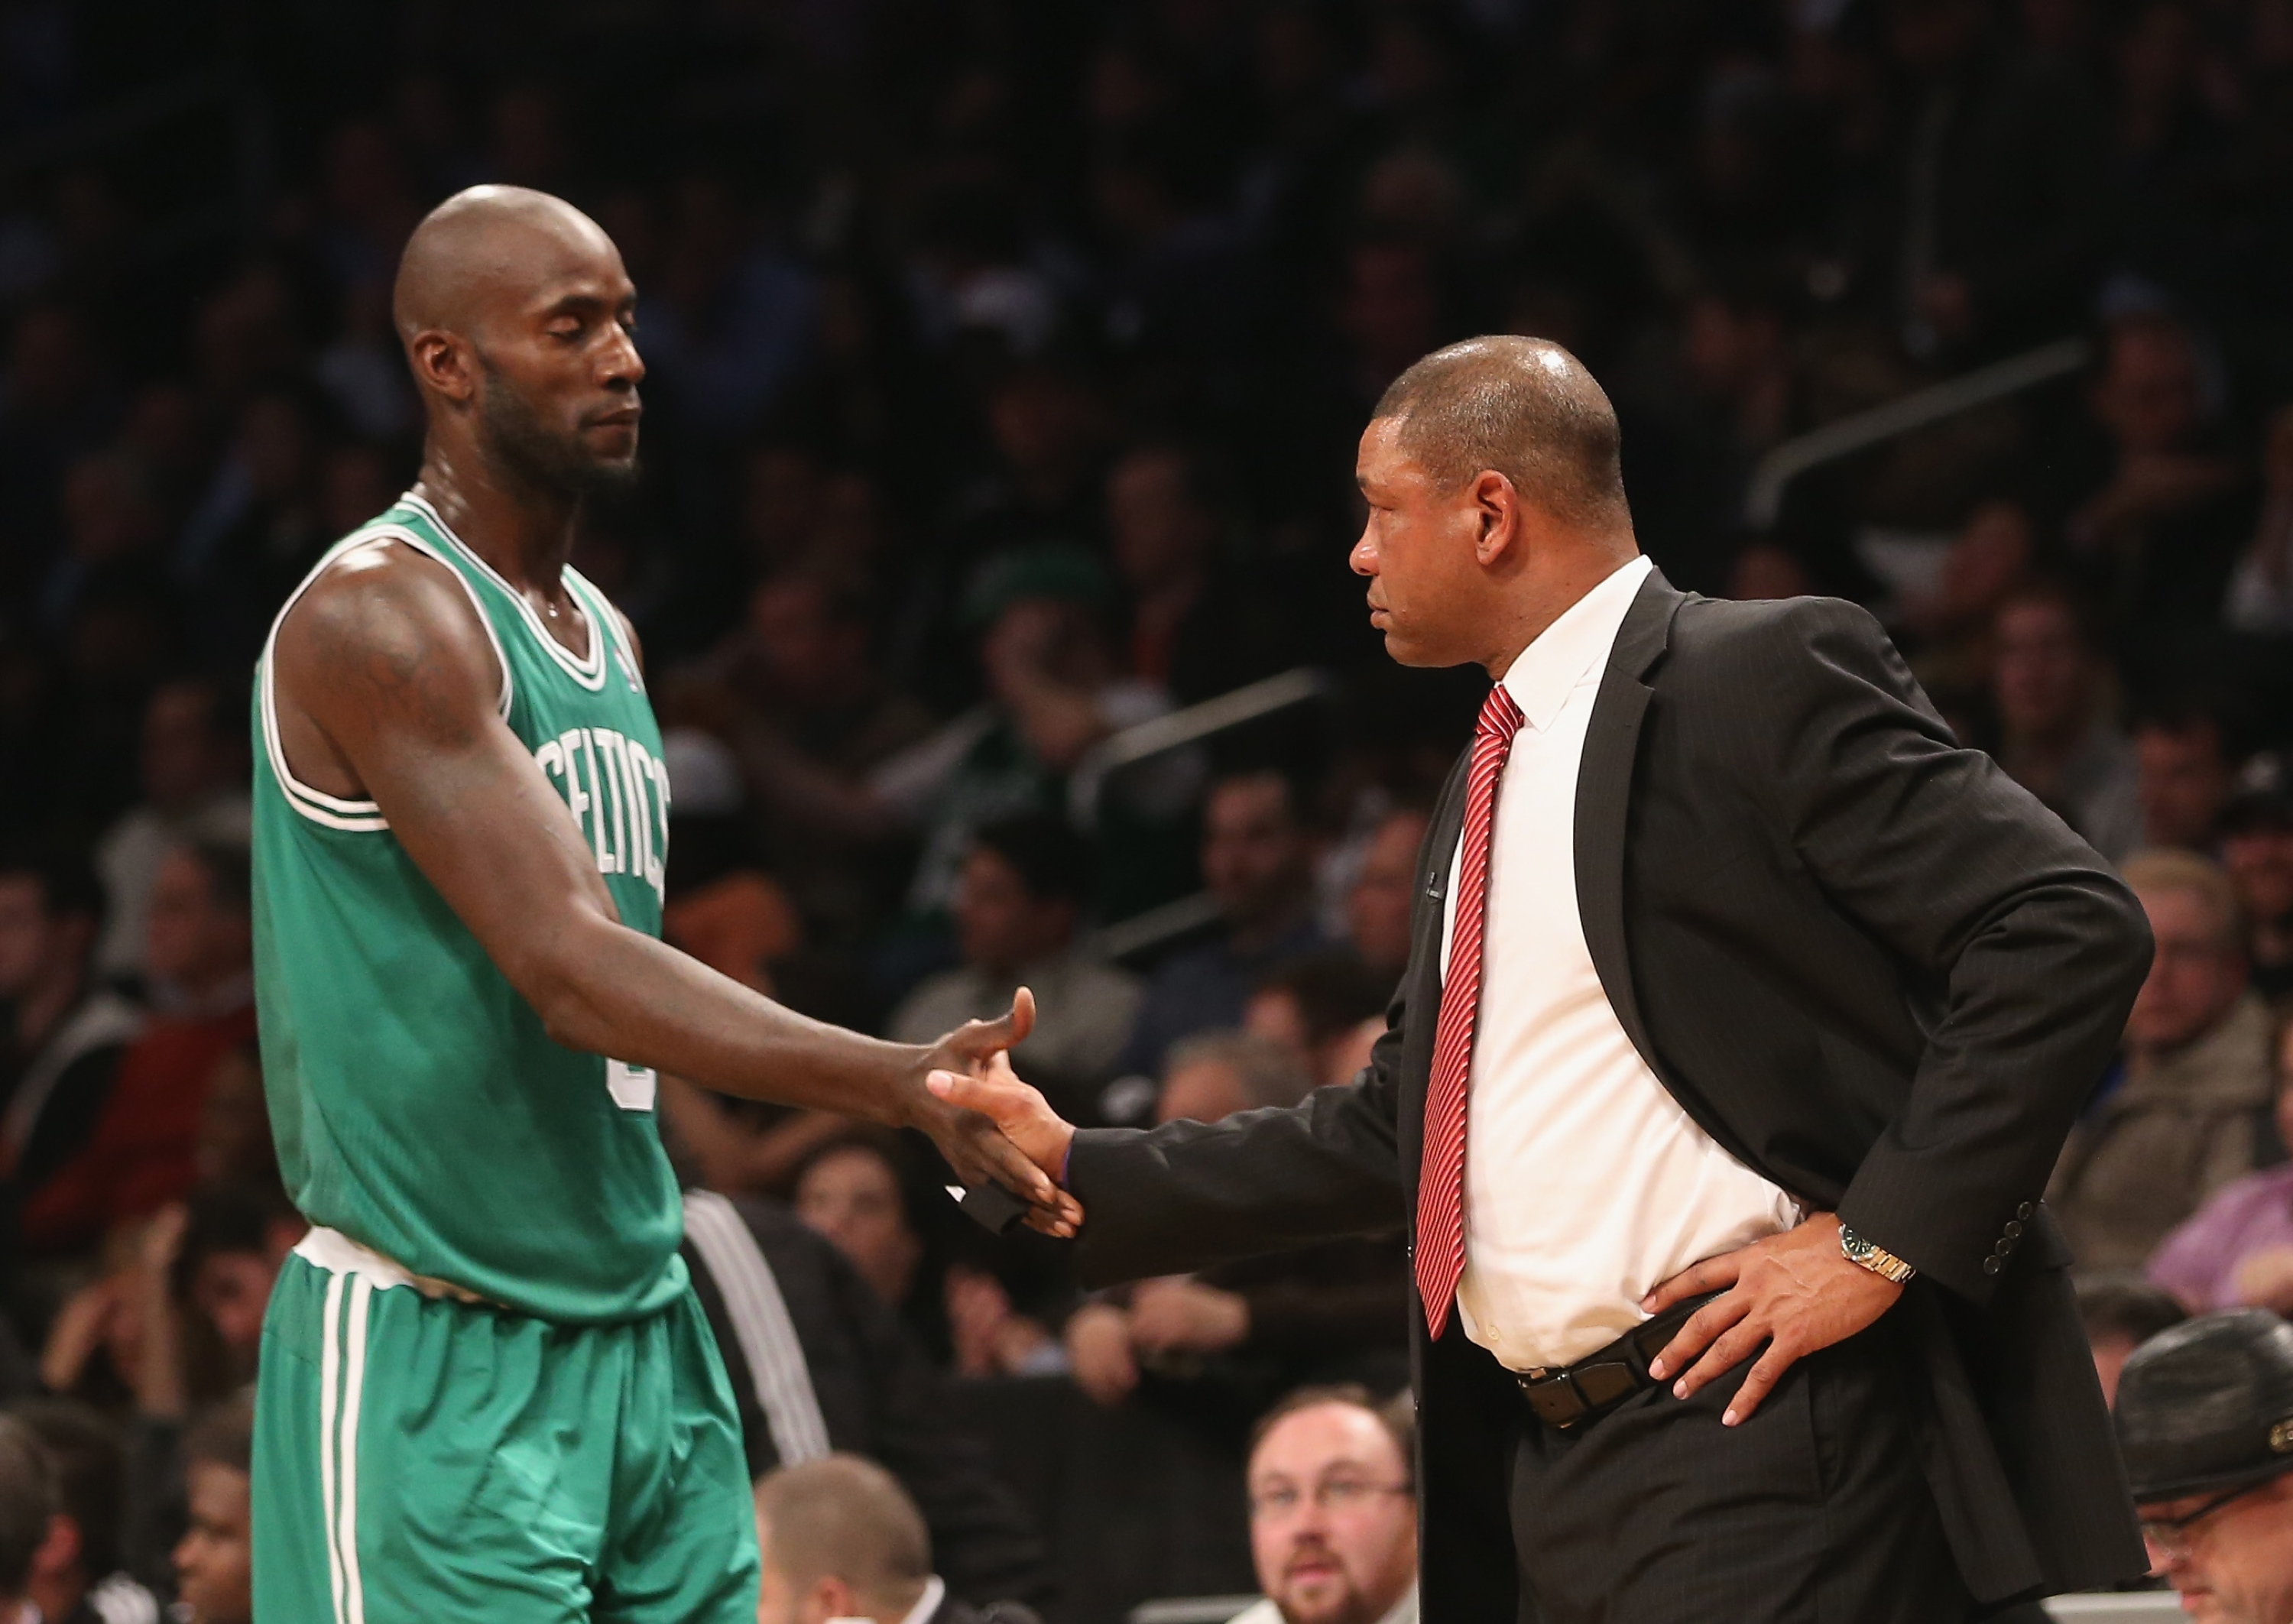 Boston has had talks about sending Kevin Garnett and Doc Rivers to join the Clippers. (Getty Images)